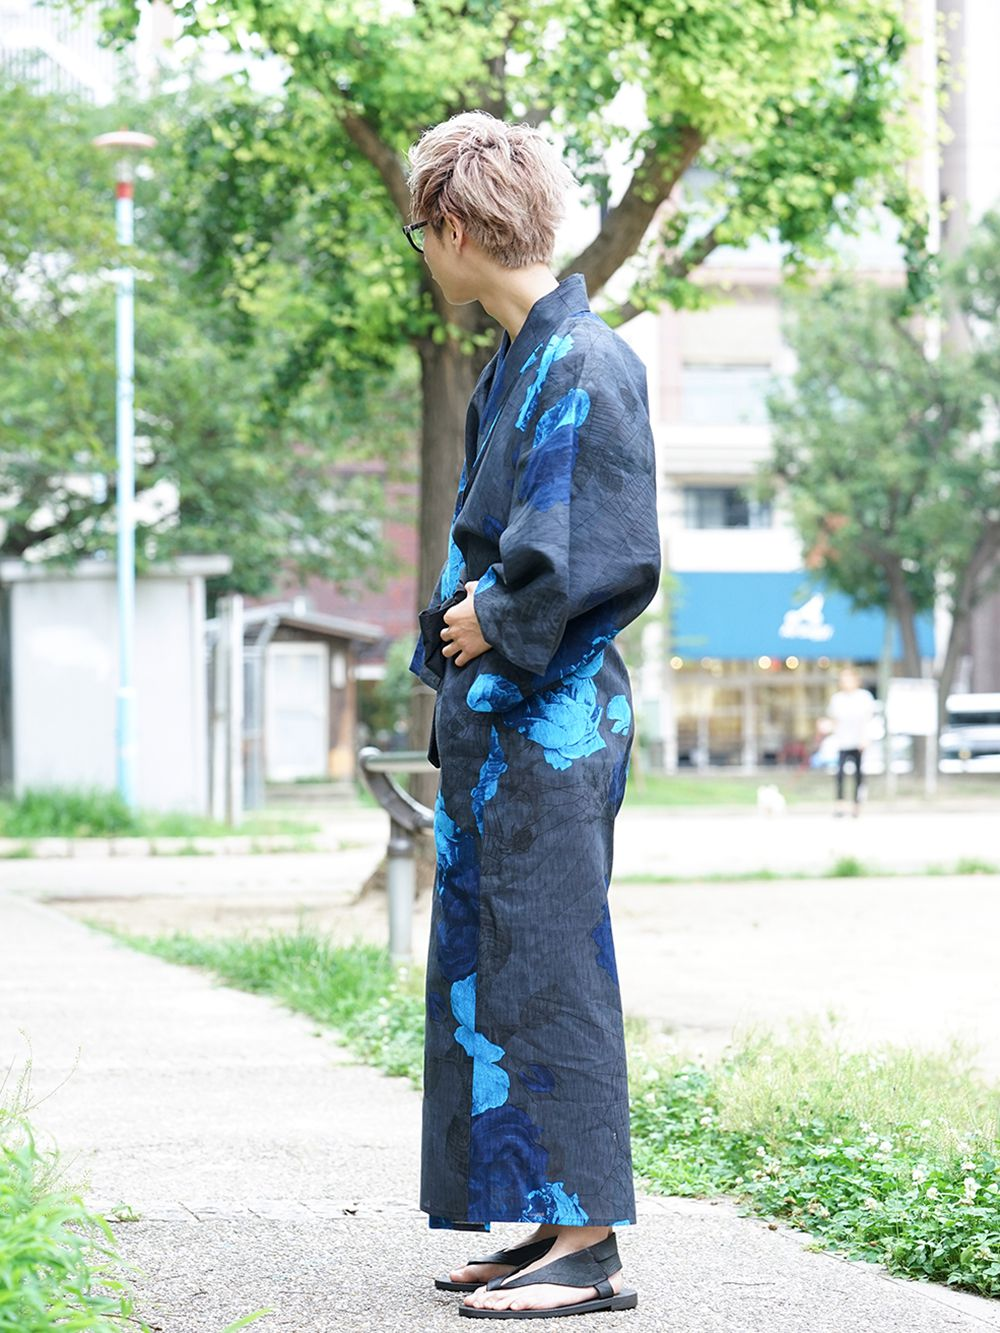 DIET BUTCHER SLIM SKIN 【YUKATA】 - 1-002